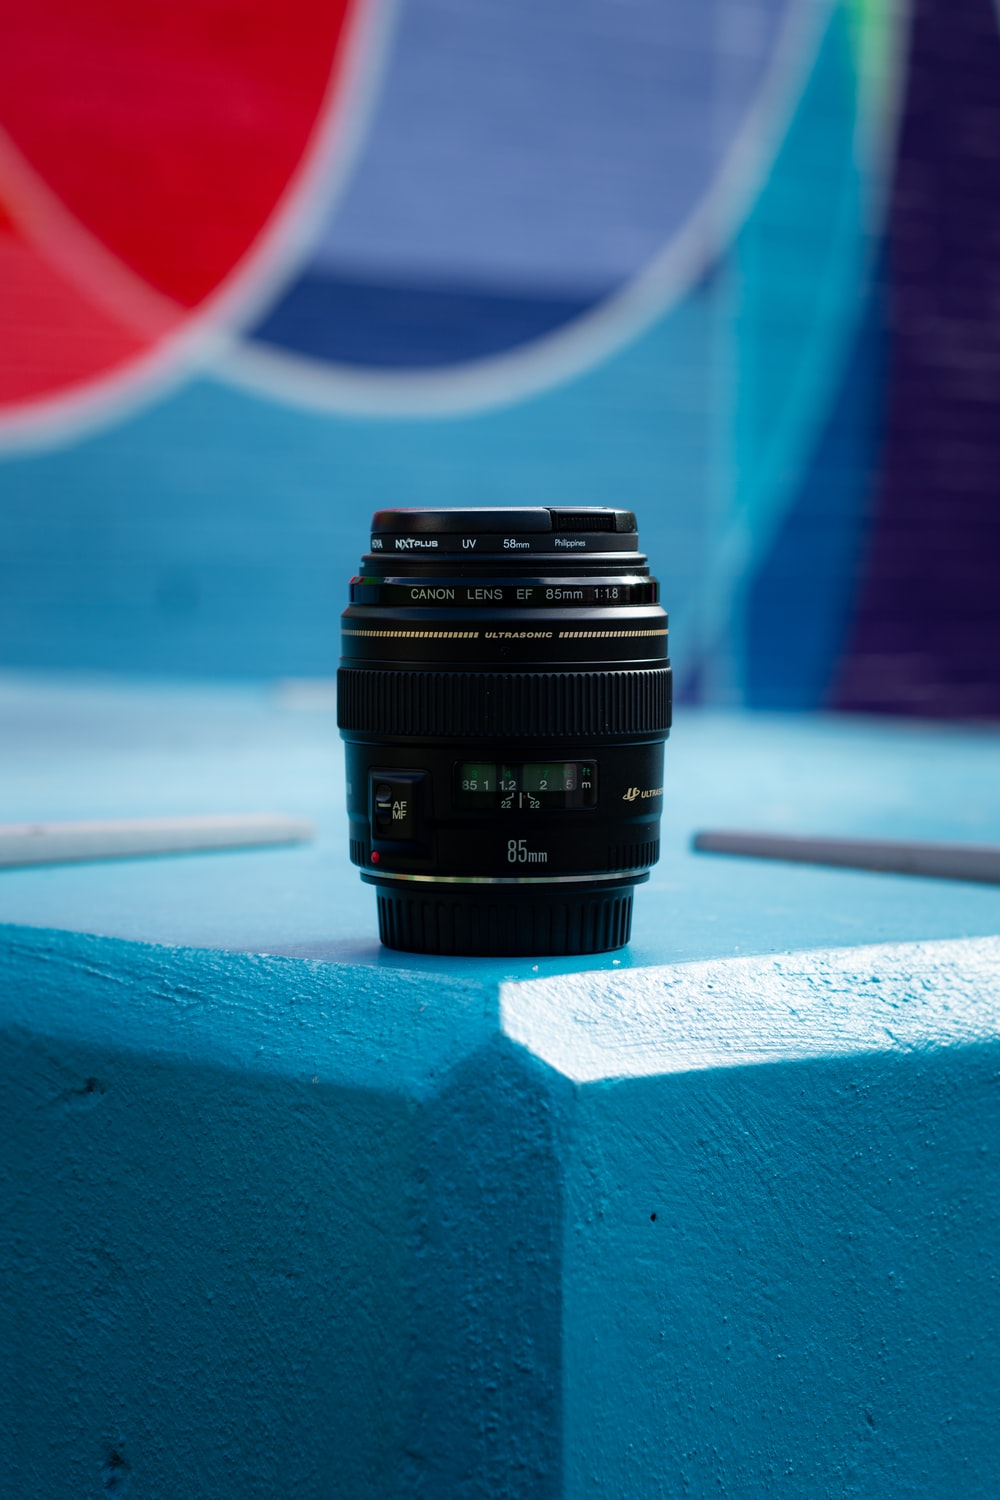 black camera lens on white and blue surface